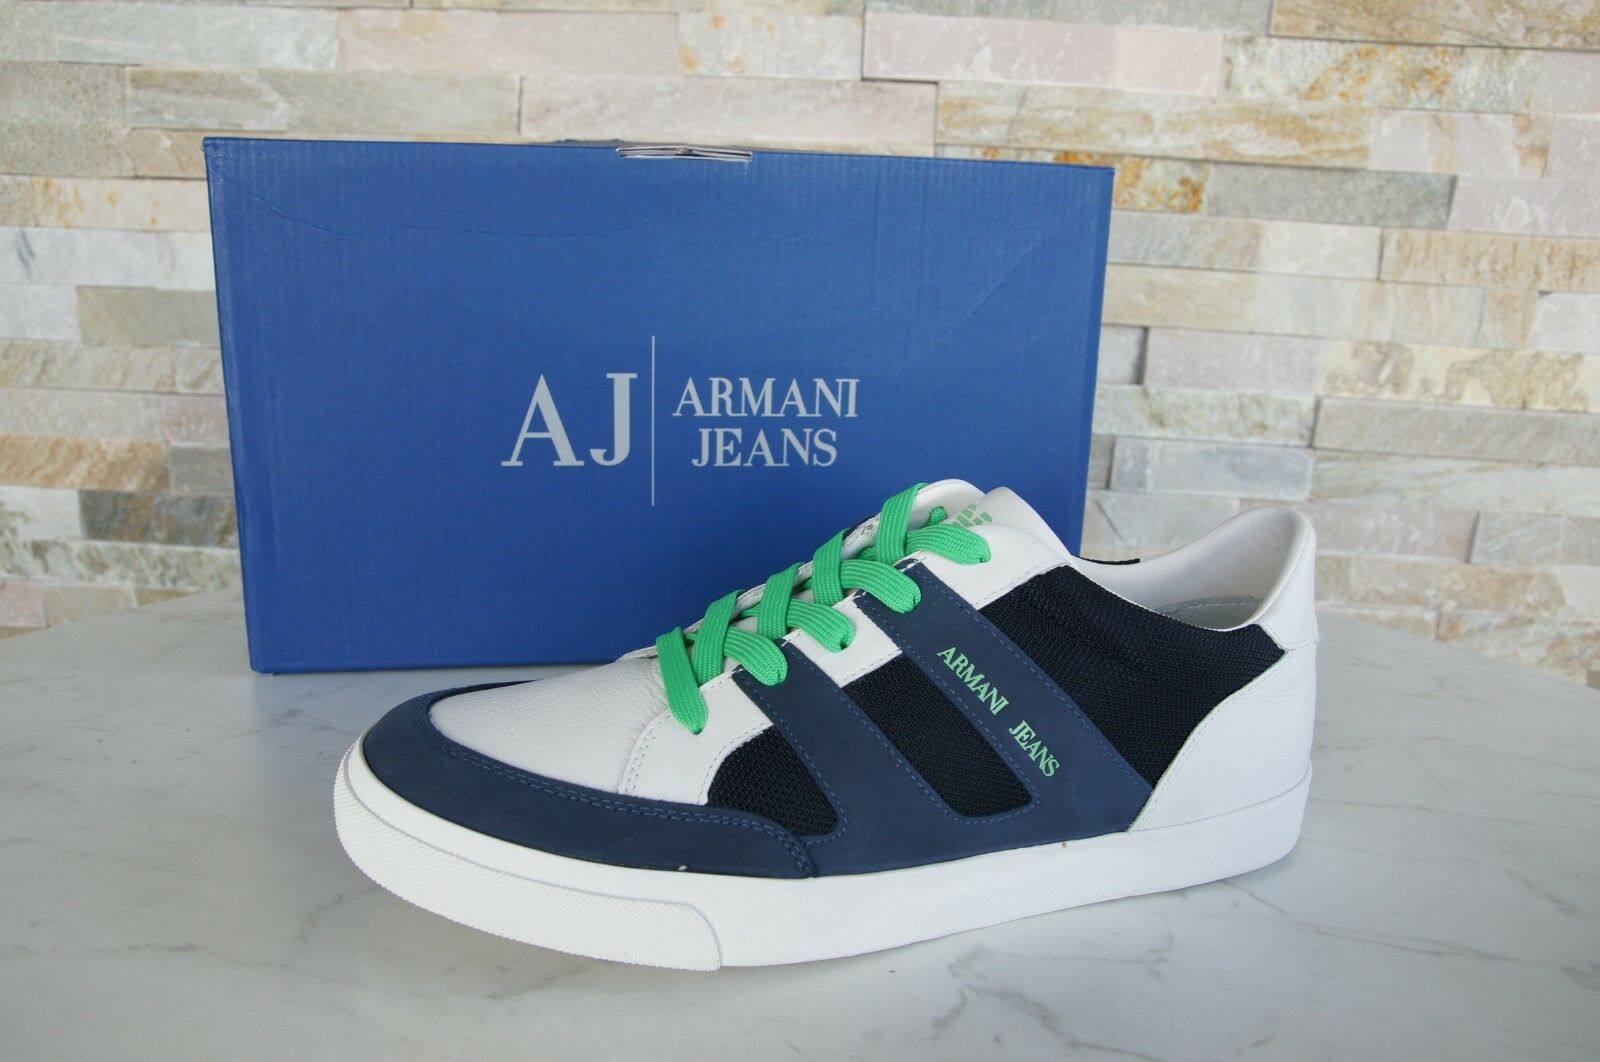 Armani Jeans Sneakers Trainers Size 41 Sport Shoes Shoes Shoes NEW US 8 Blue